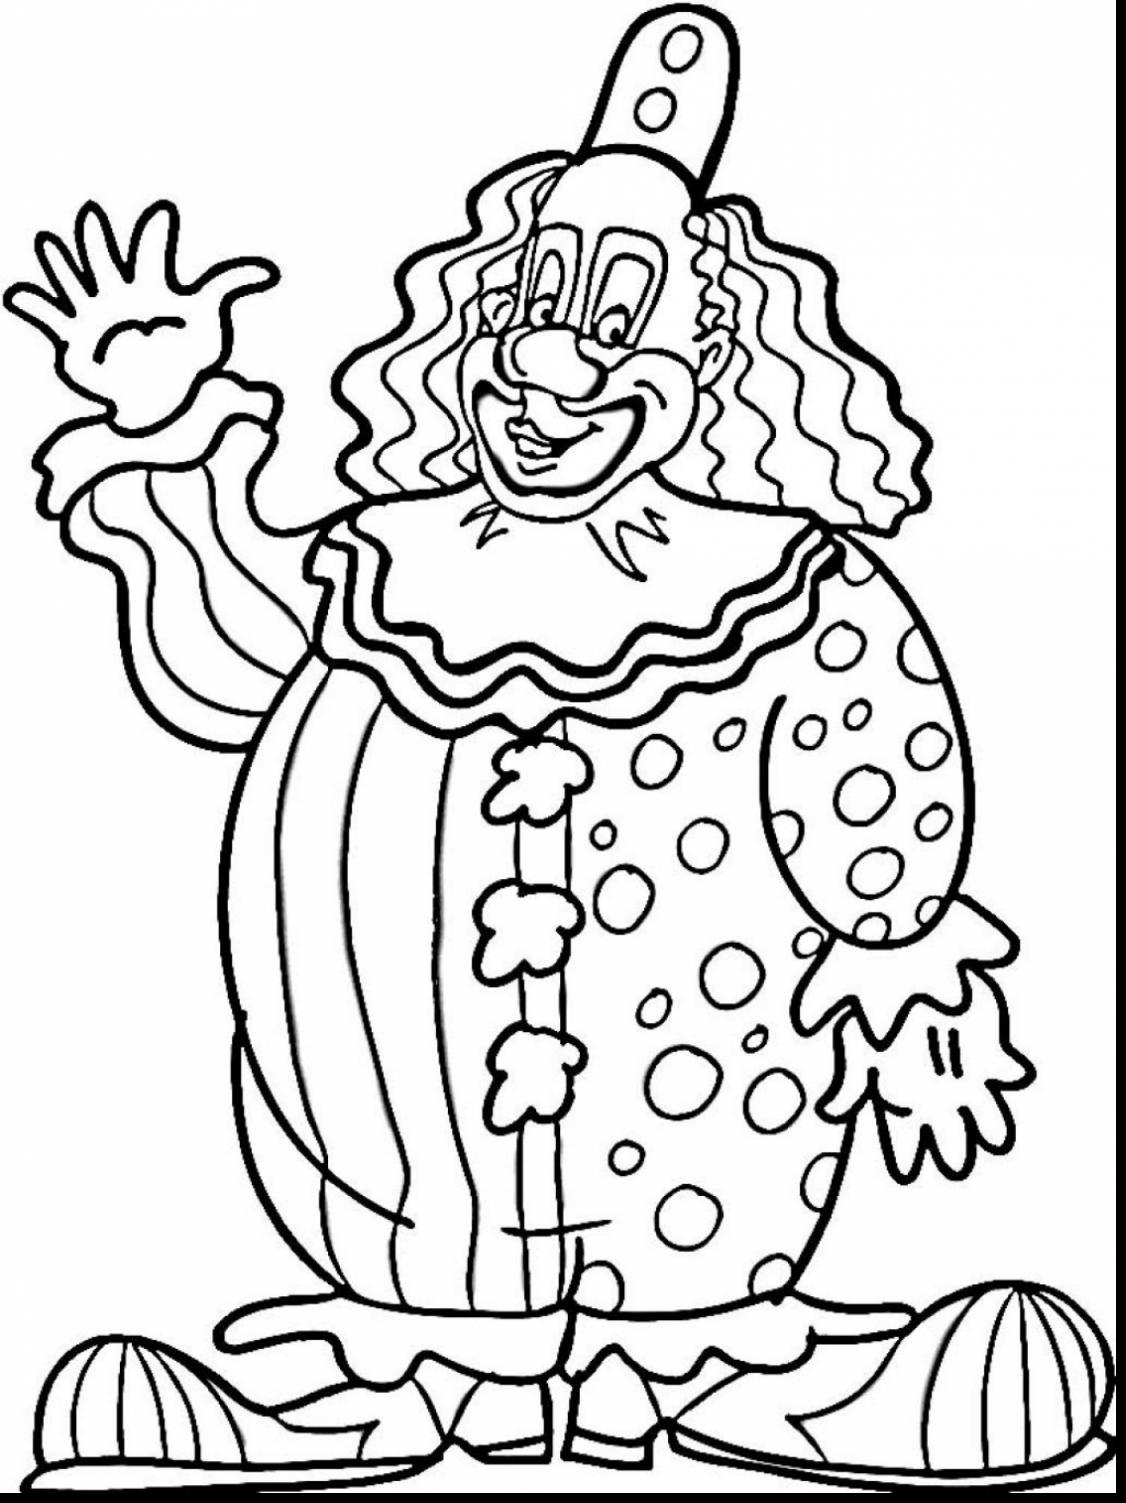 1126x1503 Circus Coloring Pages To Download And Print For Toddler Free